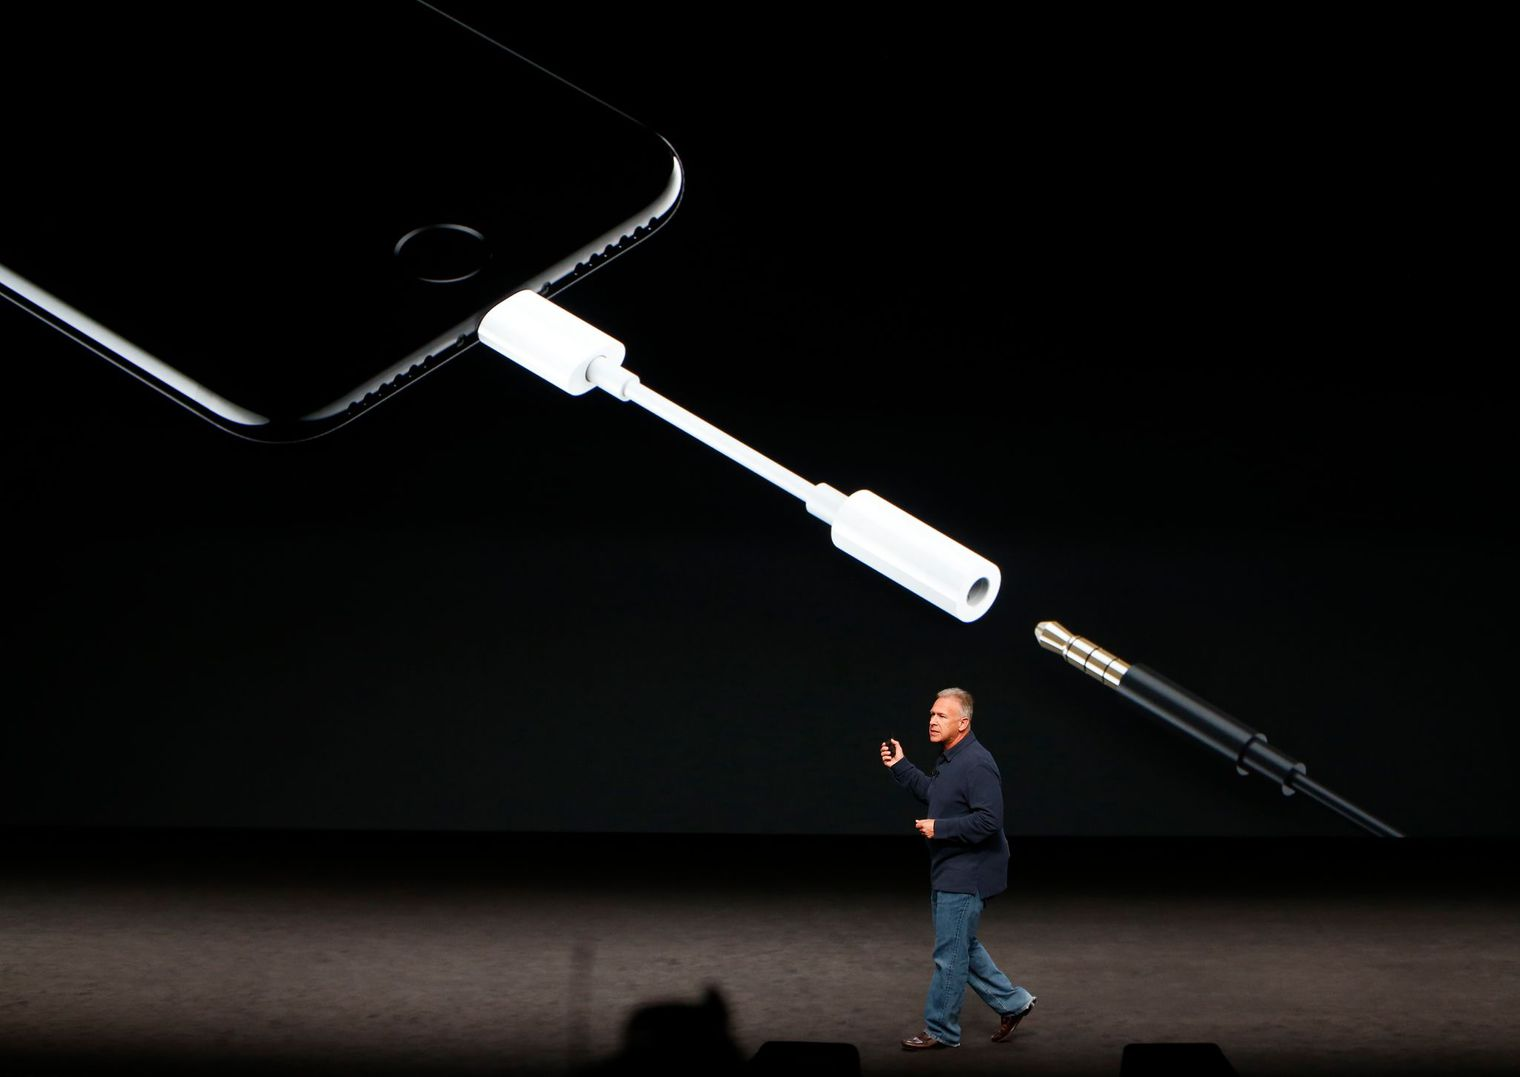 phil-schiller-discusses-the-audio-features-of-the-iphone-7-during-a-media-event-in-san-francisco_5664917